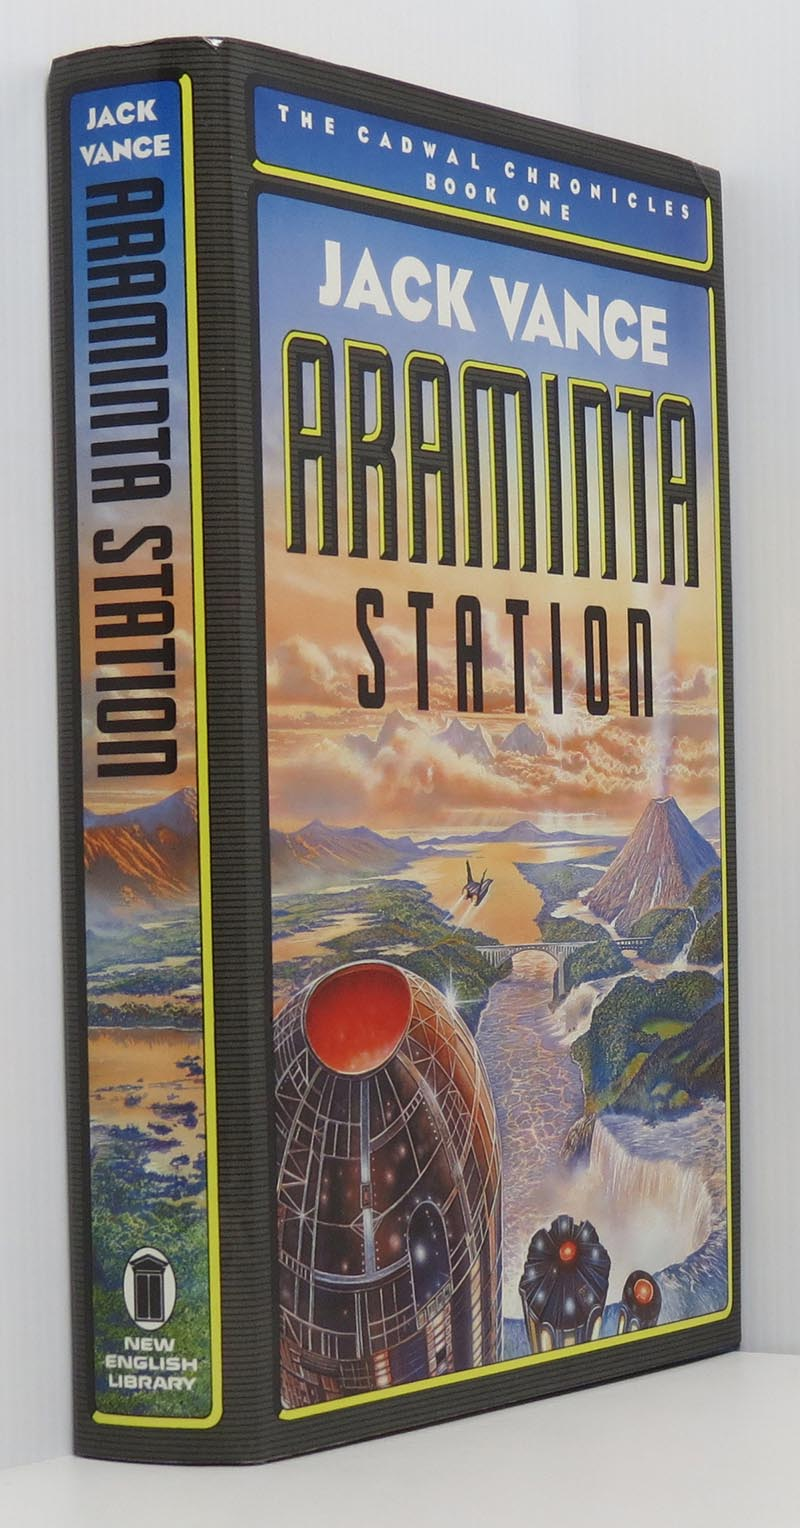 Image for Araminta Station (Cadwal Chronicles book 1)